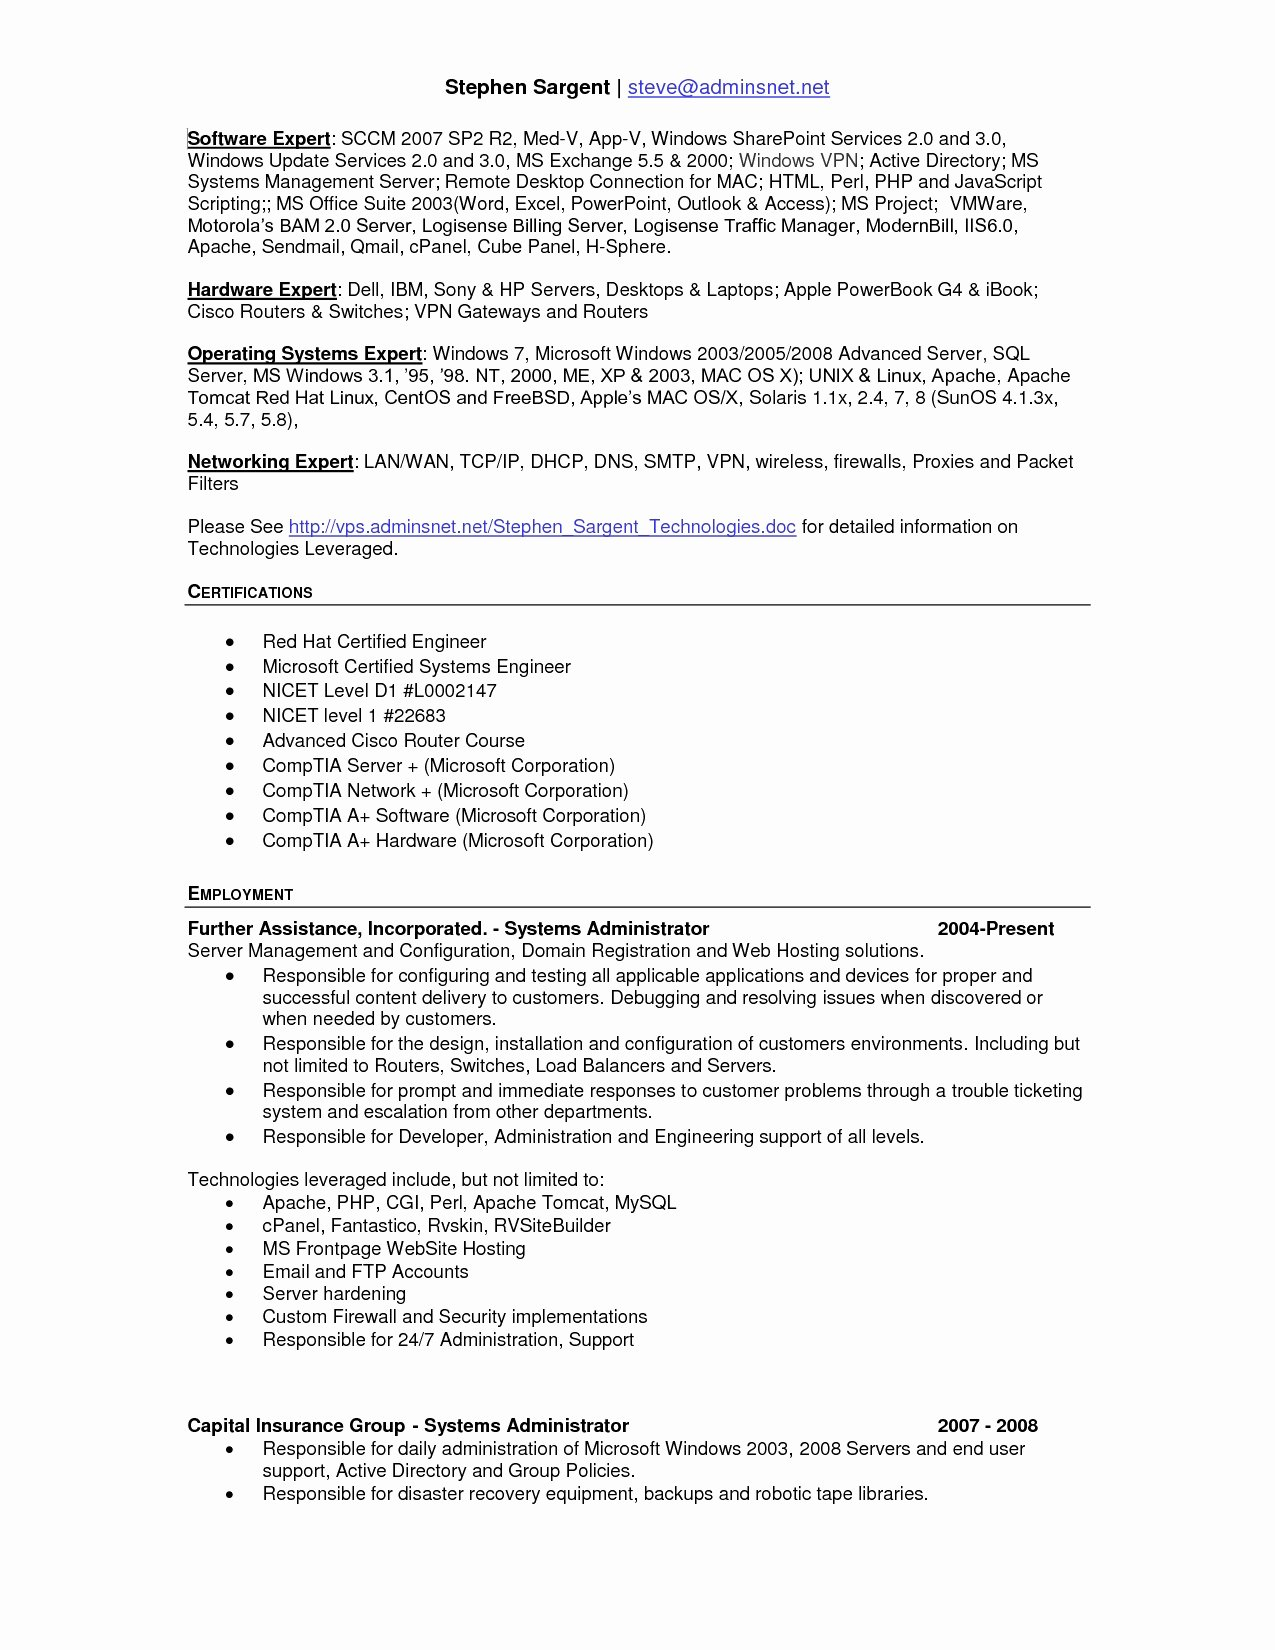 Resume Template for Mac Best Of Free Resume Template for Mac Os X